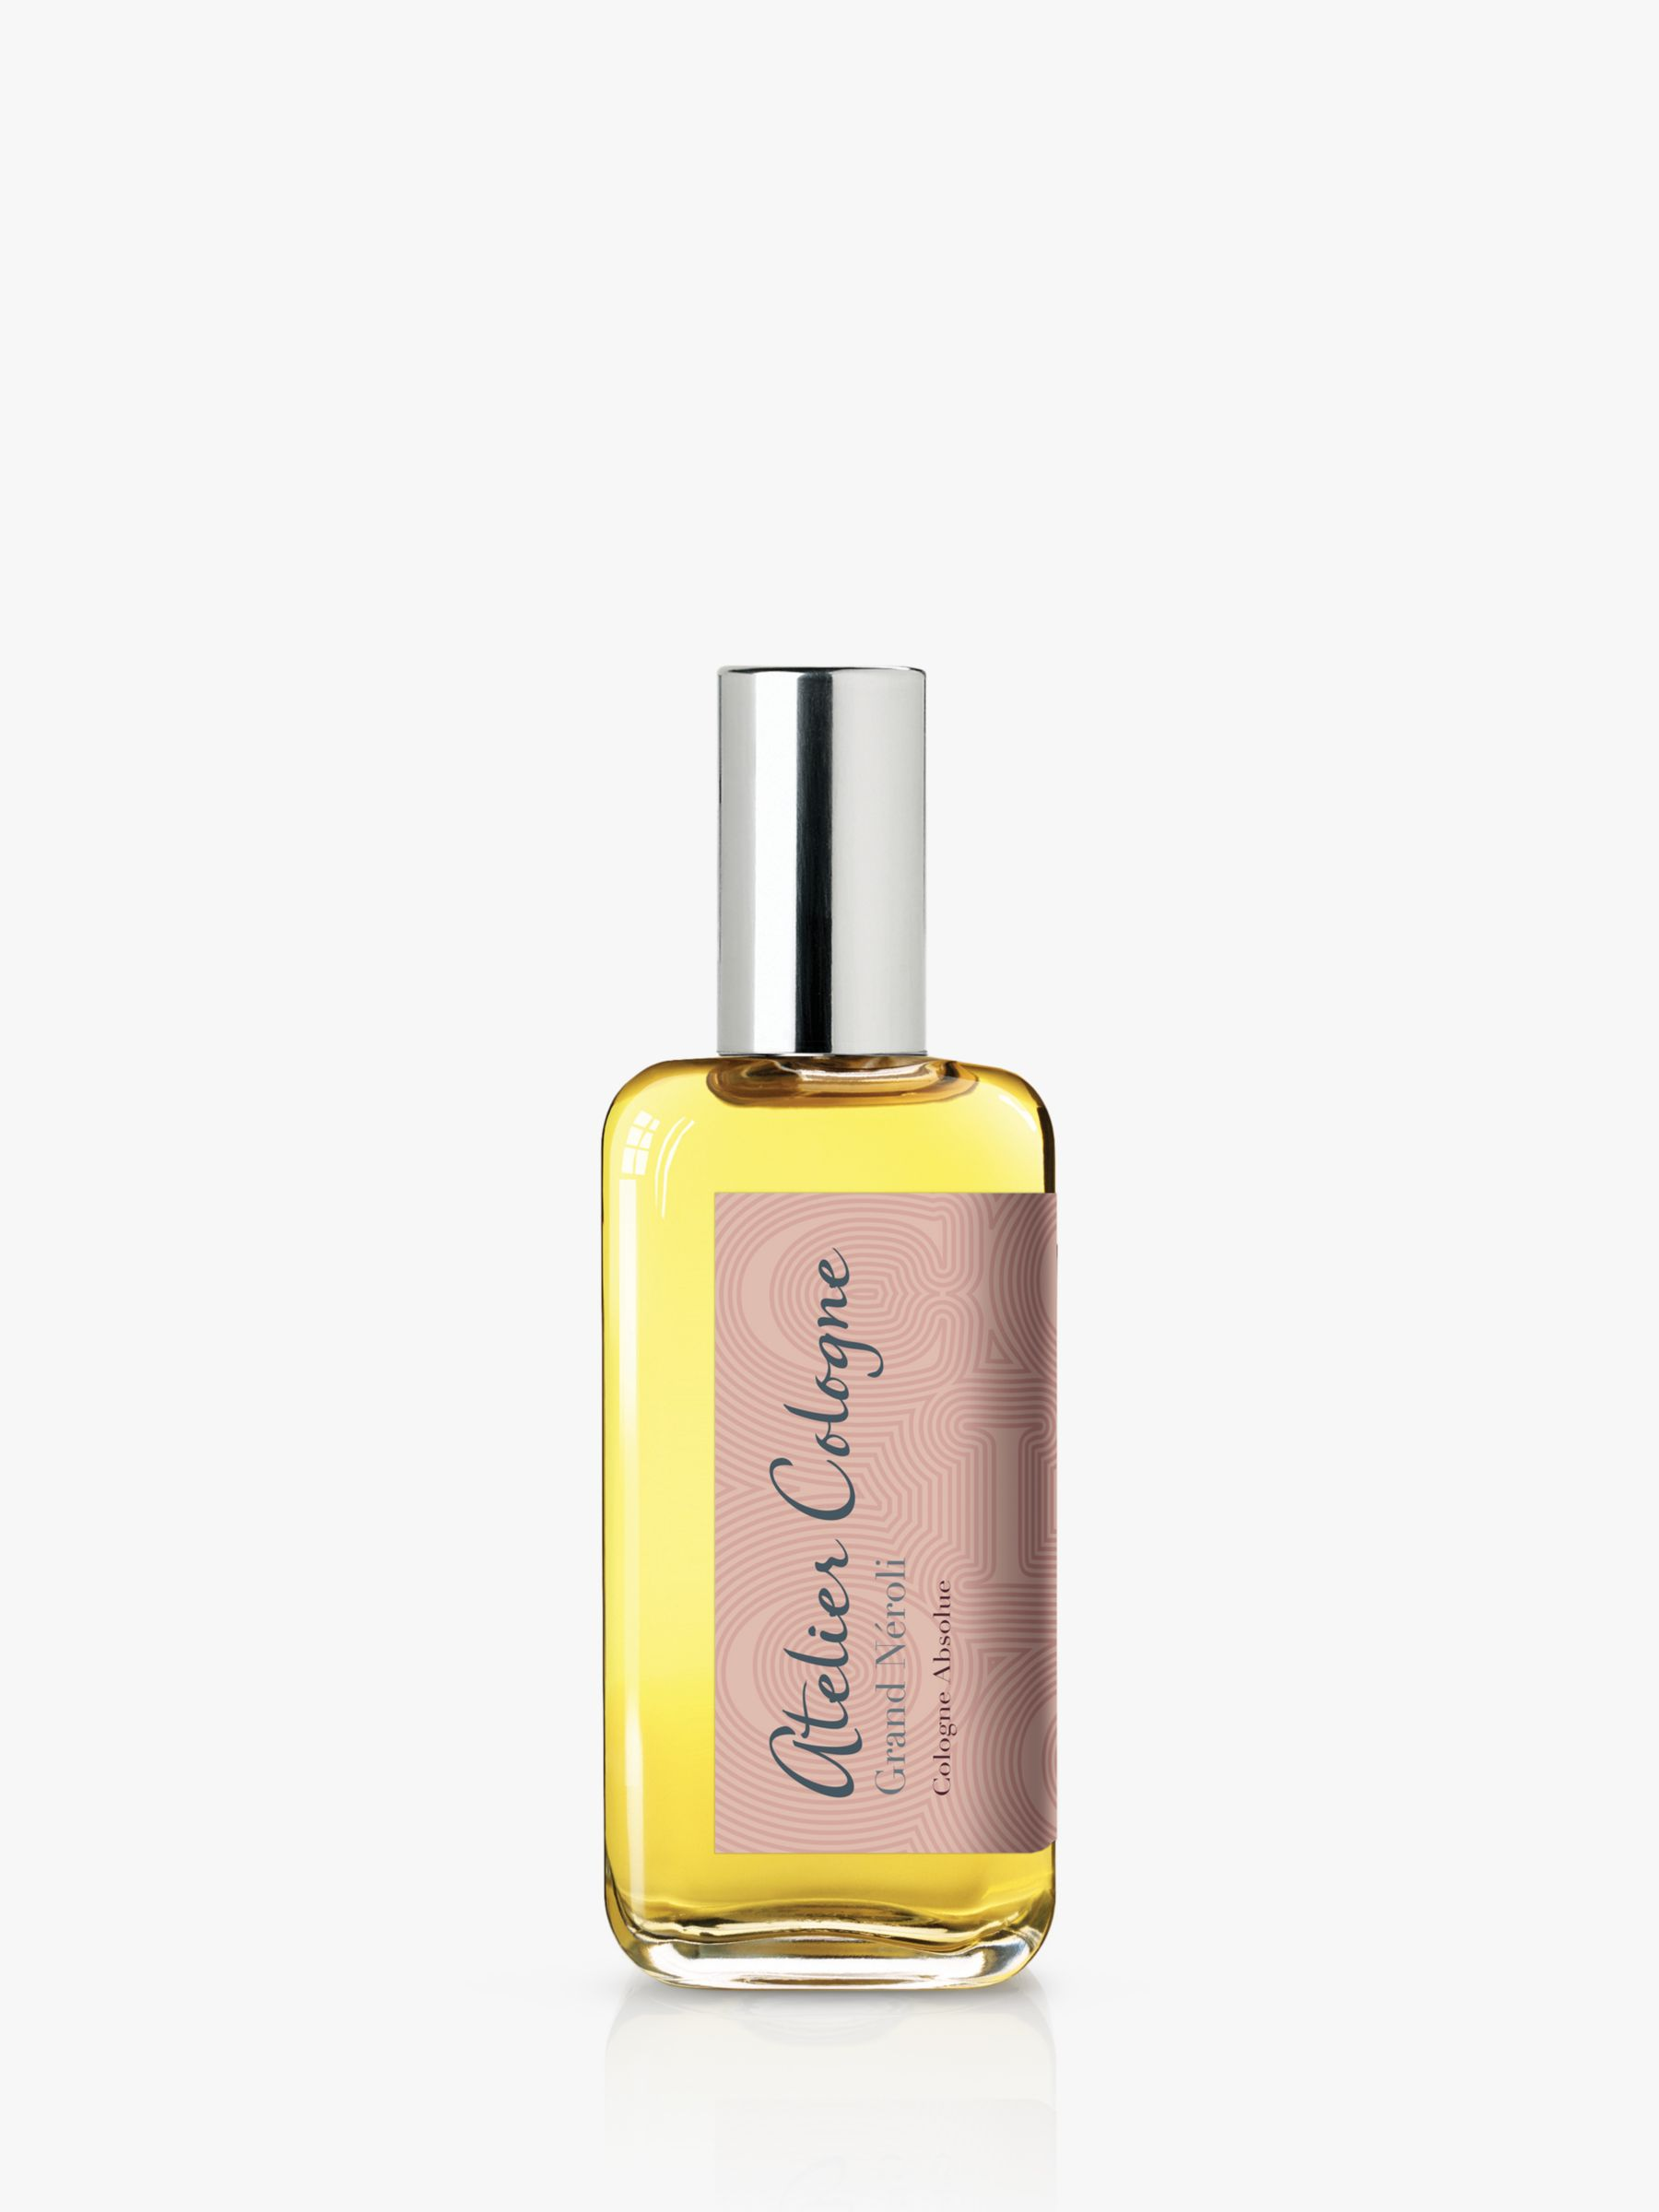 Atelier Cologne Atelier Cologne Grand Néroli Cologne Absolue, 30ml